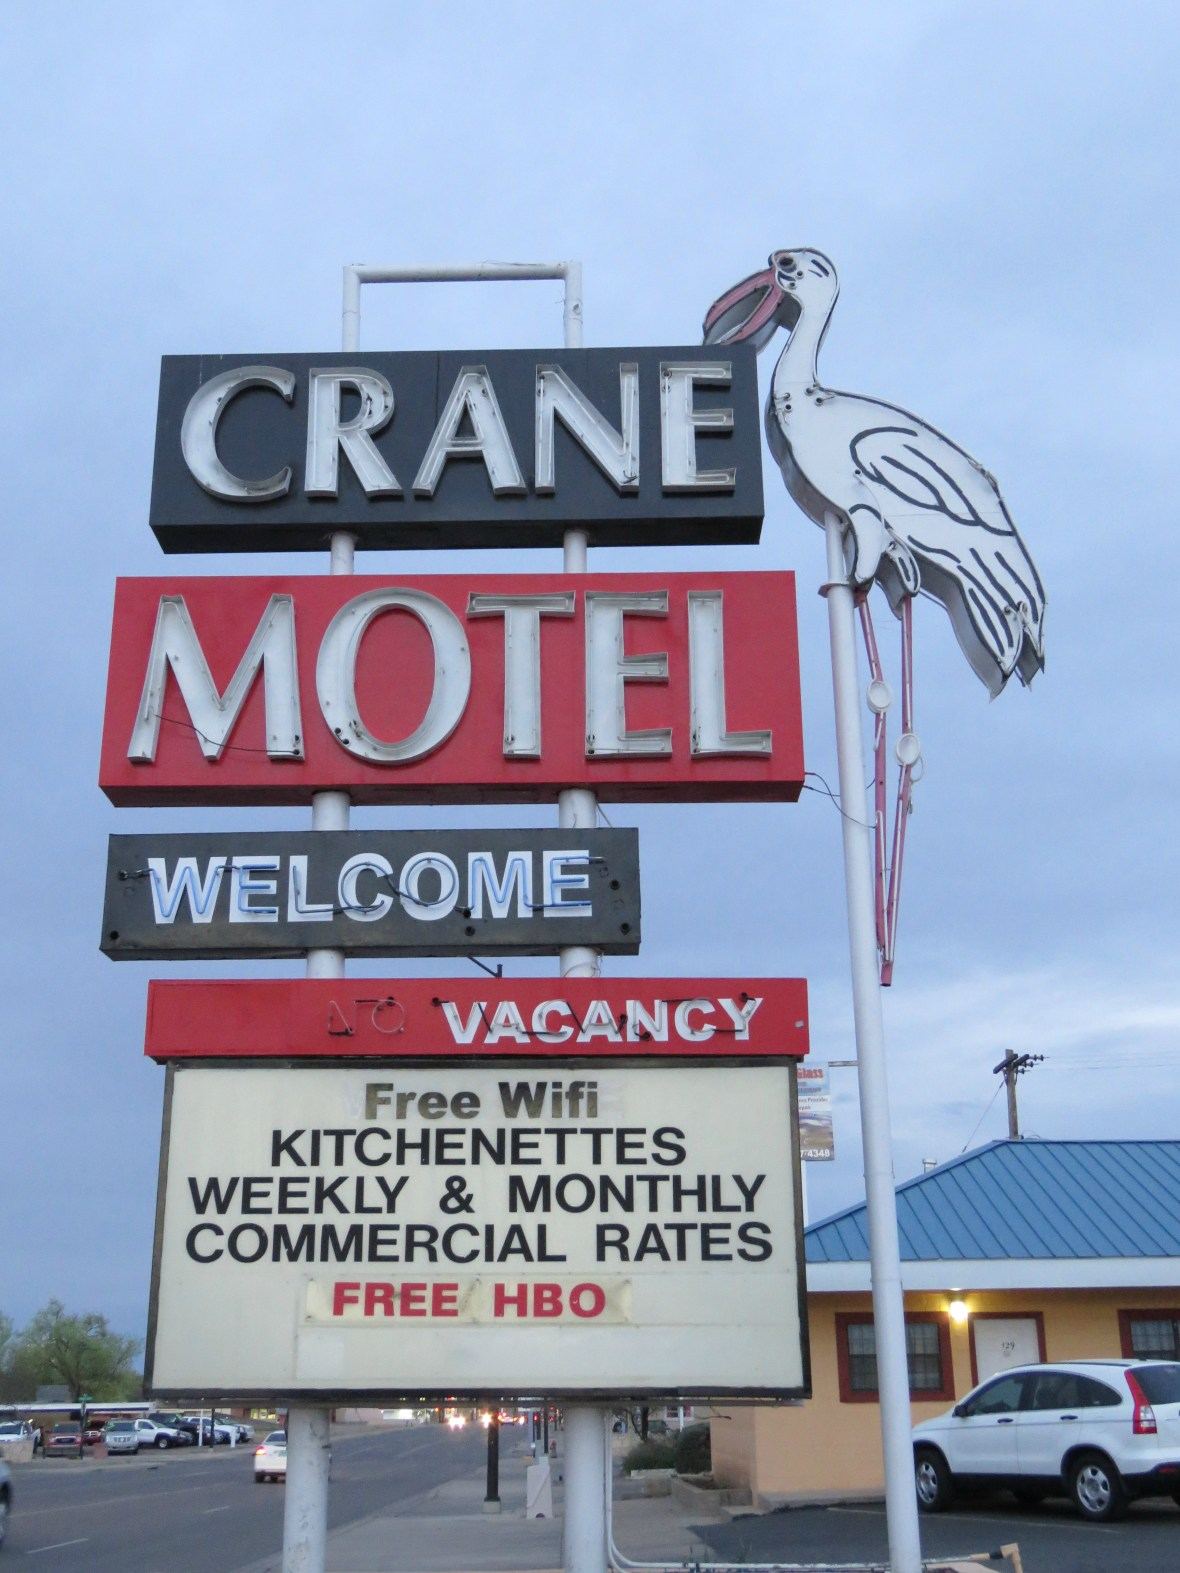 Crane Motel - 1212 West 2nd Street, Roswell, New Mexico U.S.A. - March 7, 2016